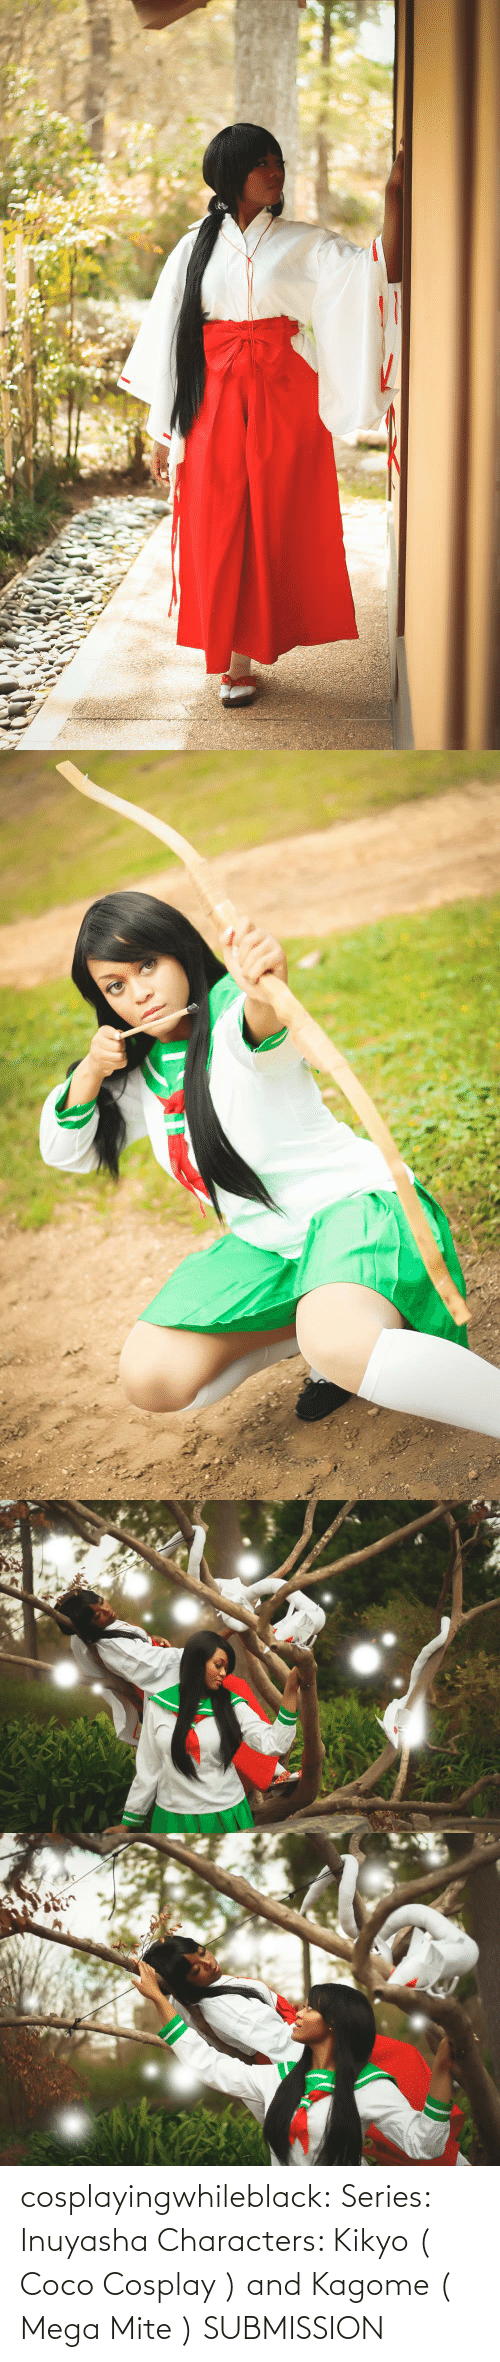 Cosplay: cosplayingwhileblack:    Series: Inuyasha Characters: Kikyo ( Coco Cosplay ) and Kagome ( Mega Mite )   SUBMISSION